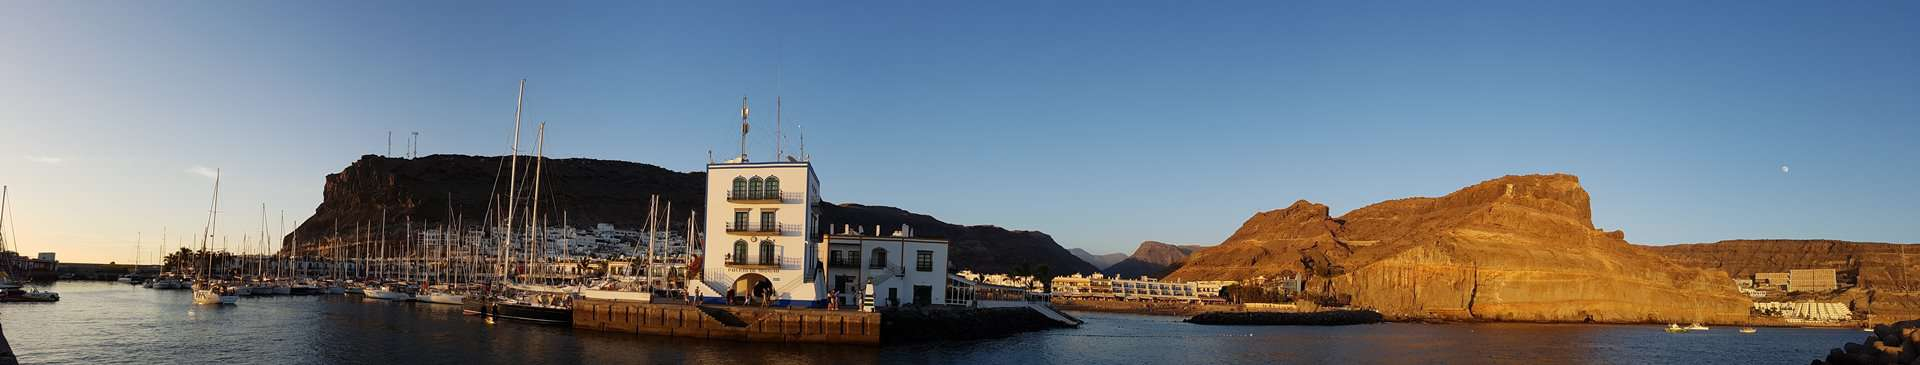 Archaeology Travel | Exploring the Past in Gran Canaria | 1